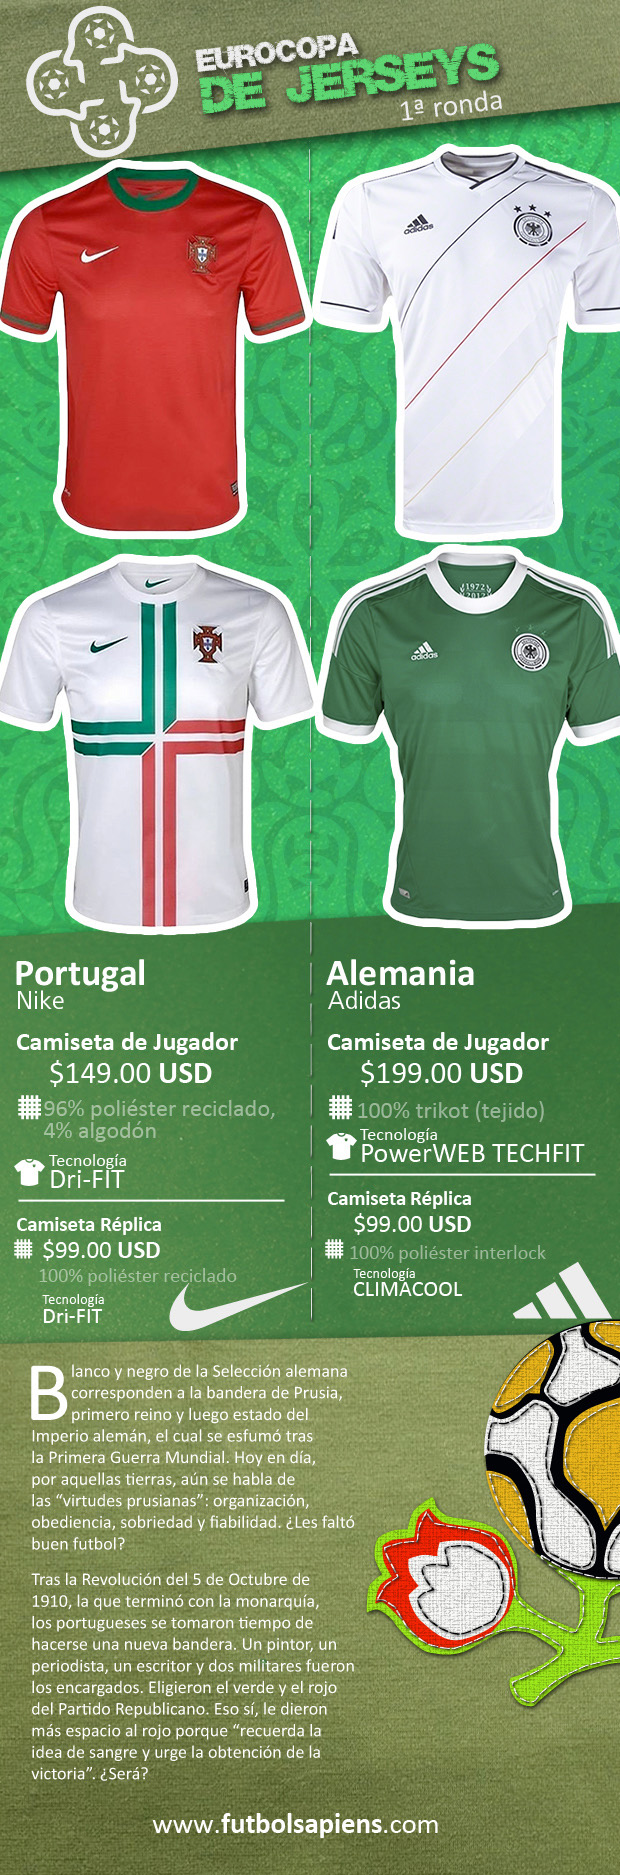 Duelo #4: Portugal Vs Alemania